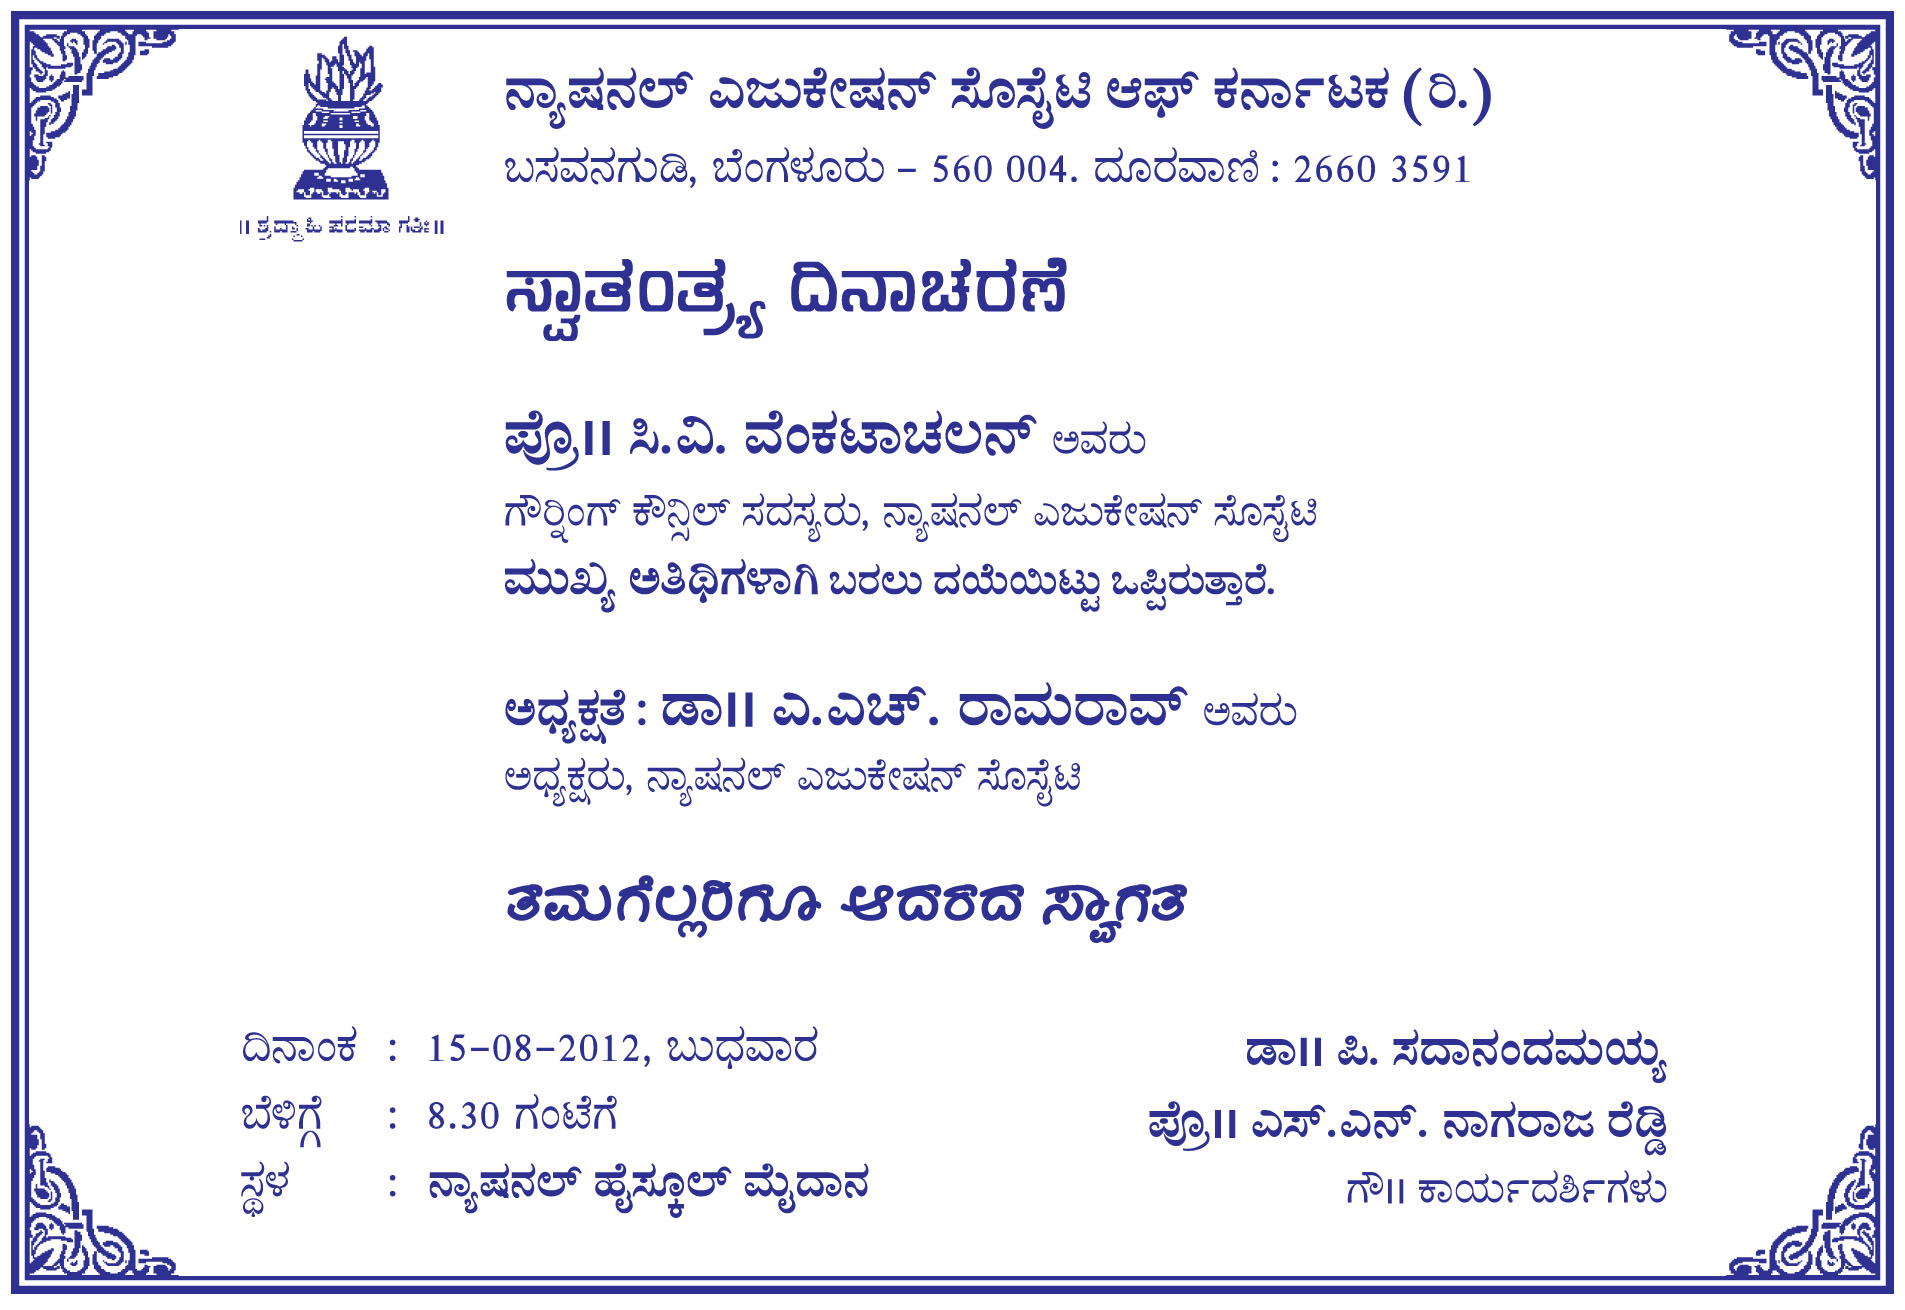 independence day 2012 invitation national pu college